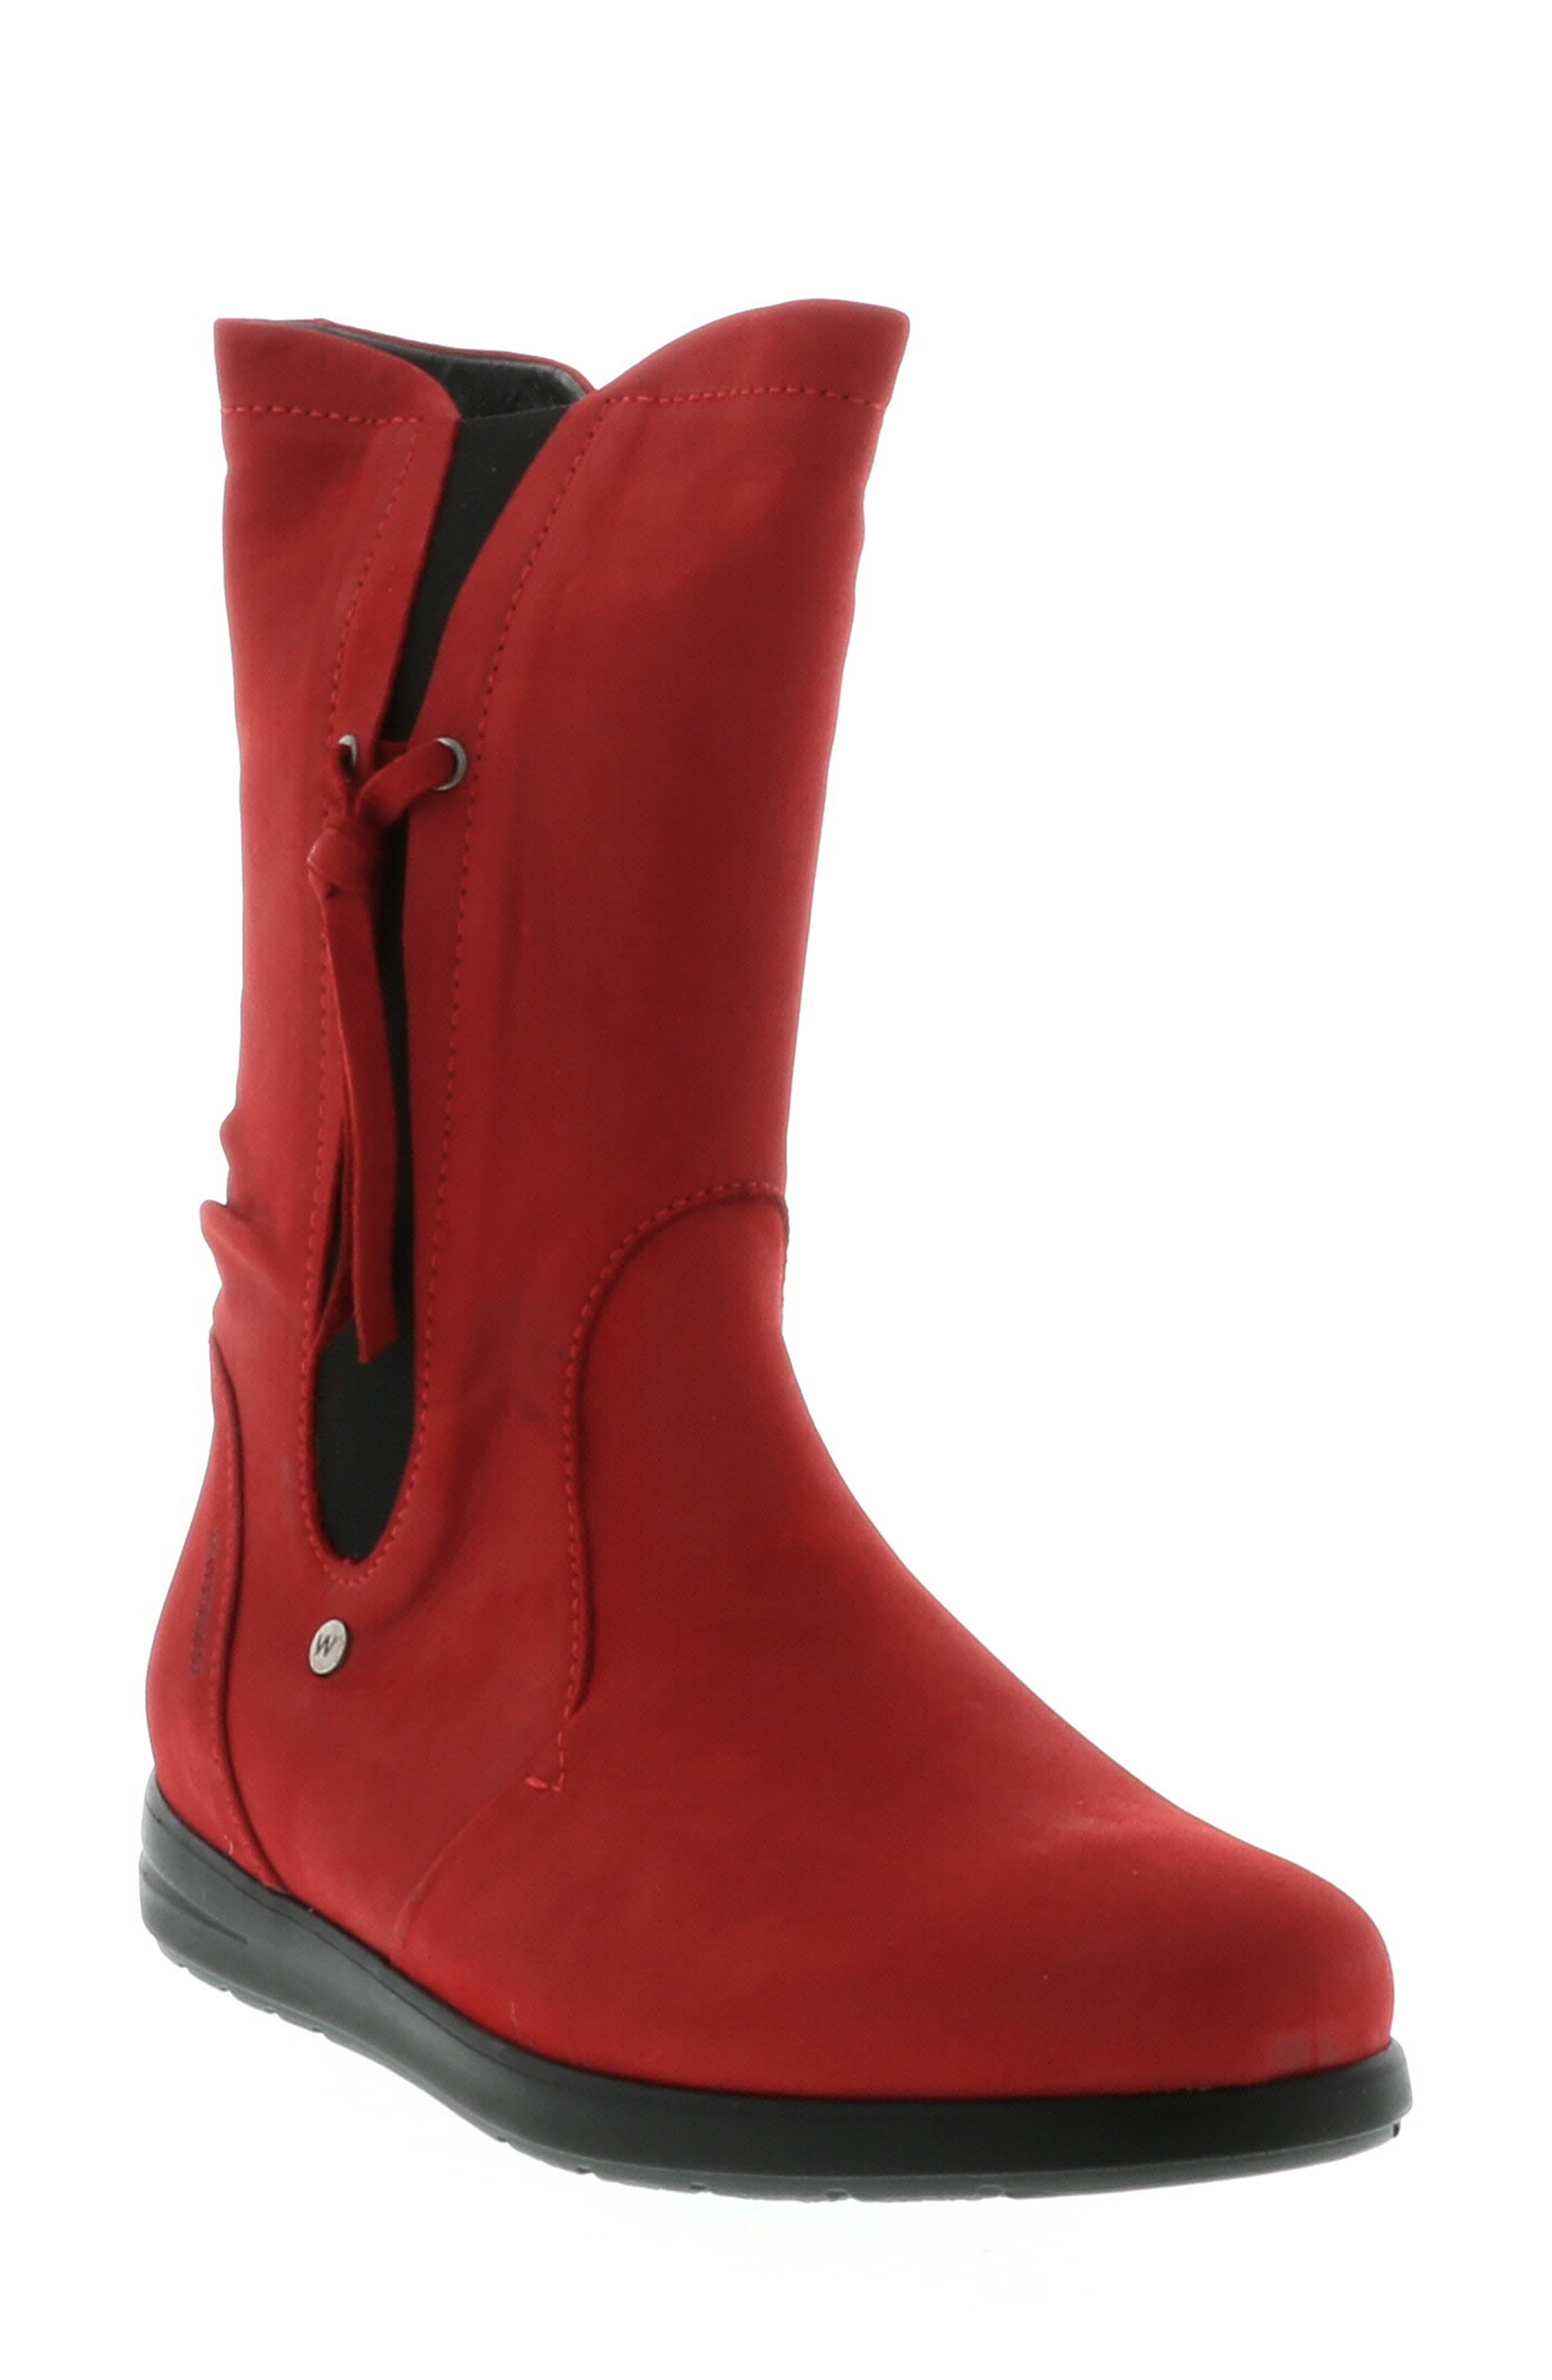 Wolky Newton Waterproof Boot - Red